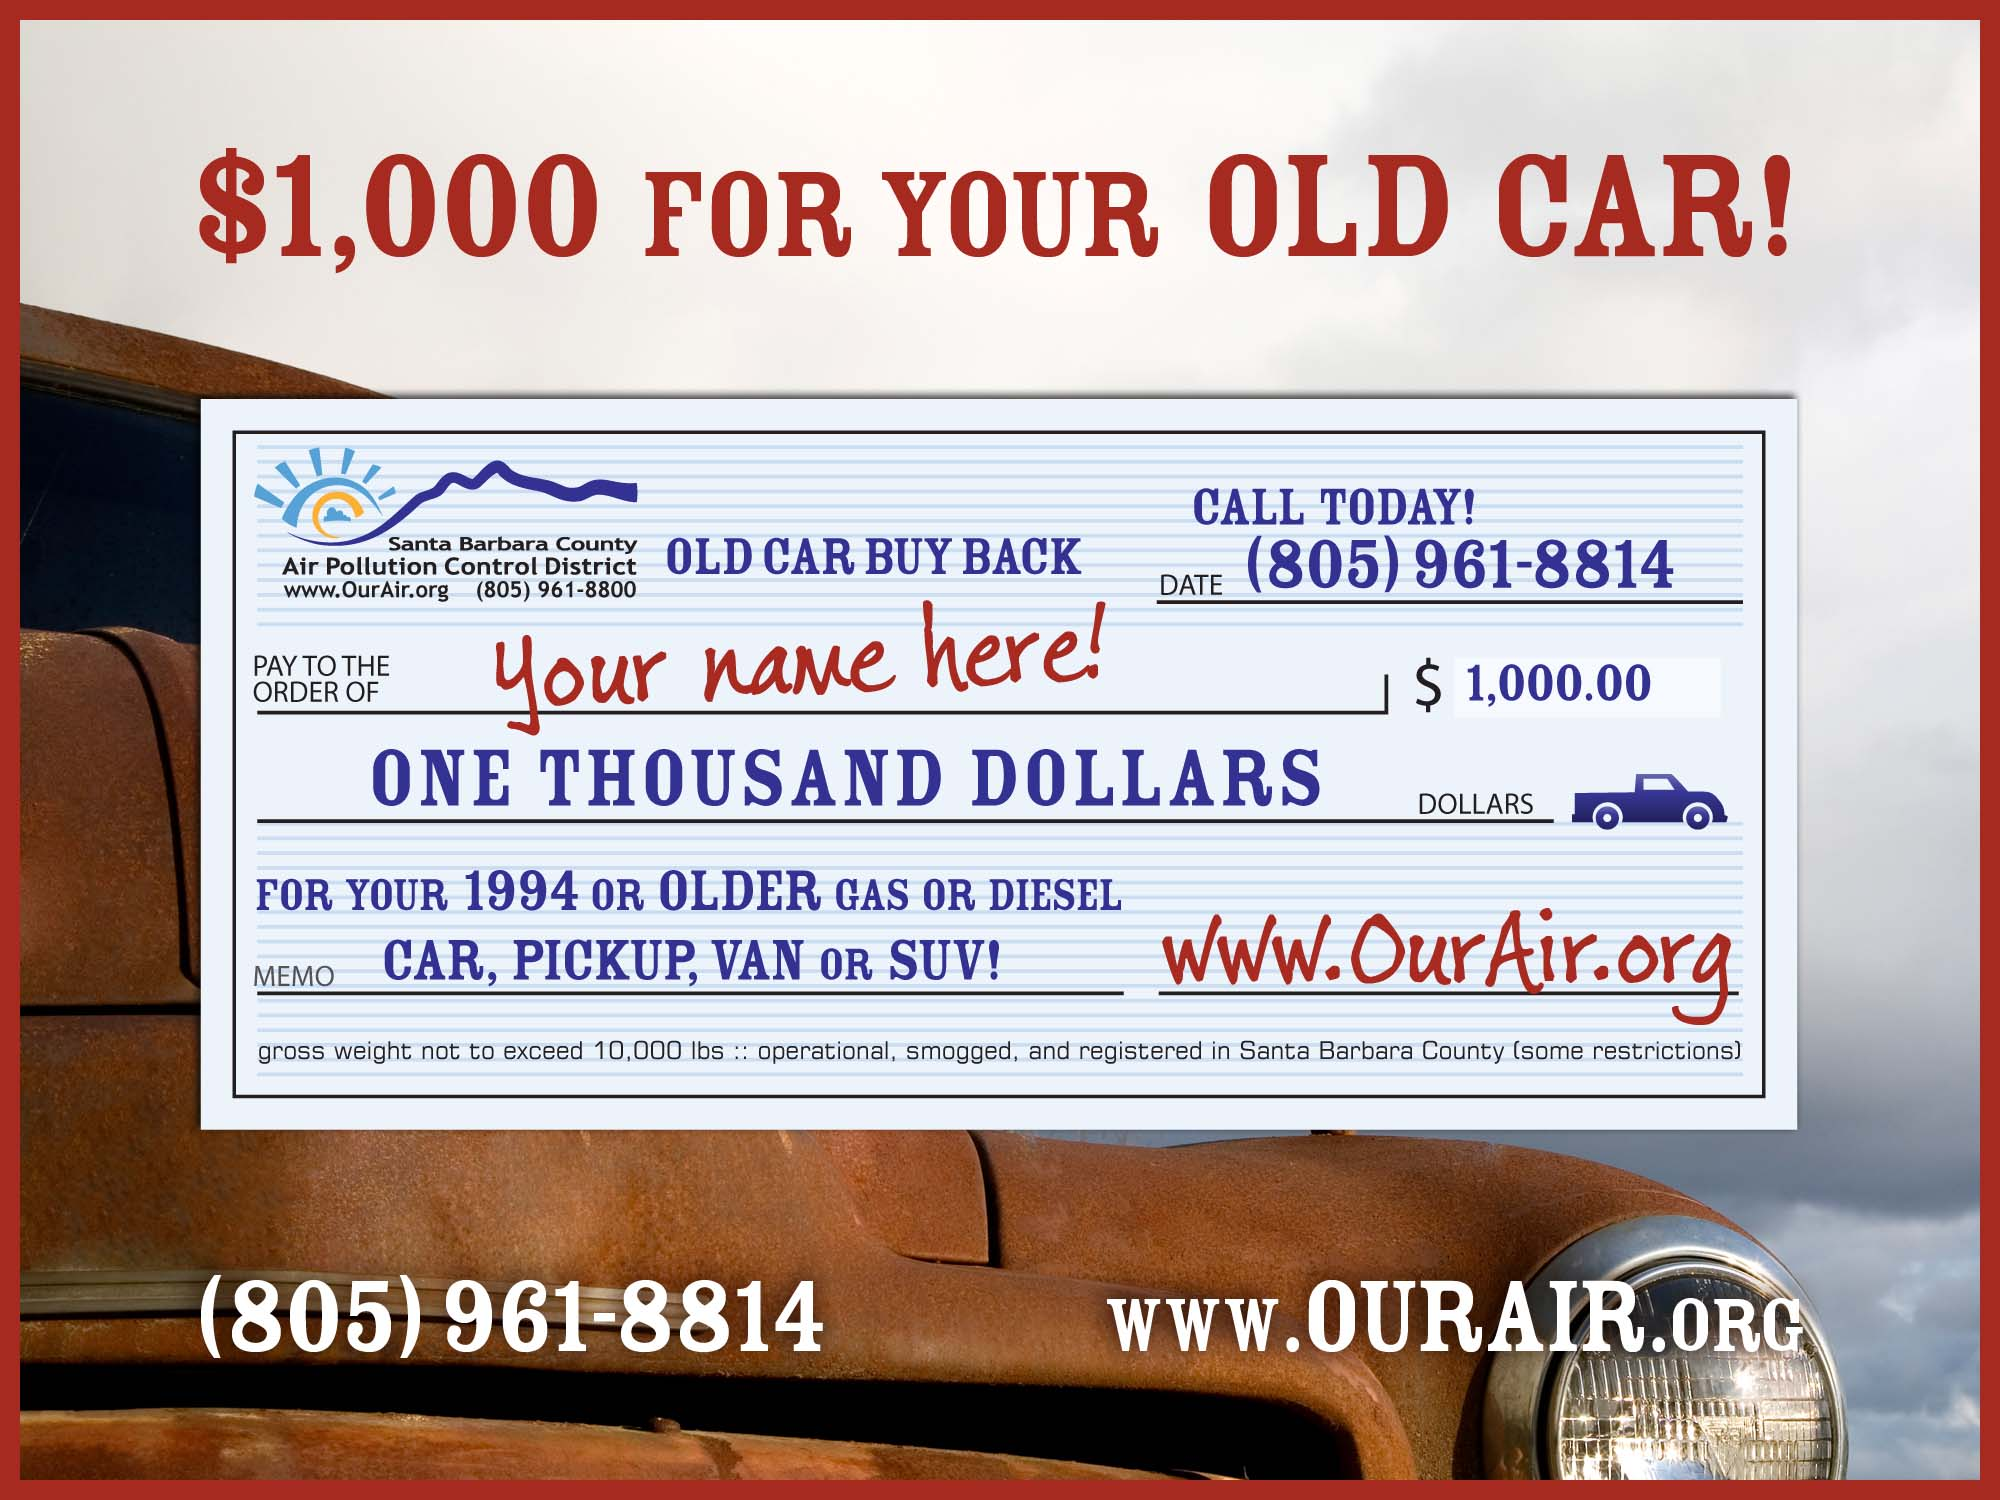 Old Car Buy Back Program